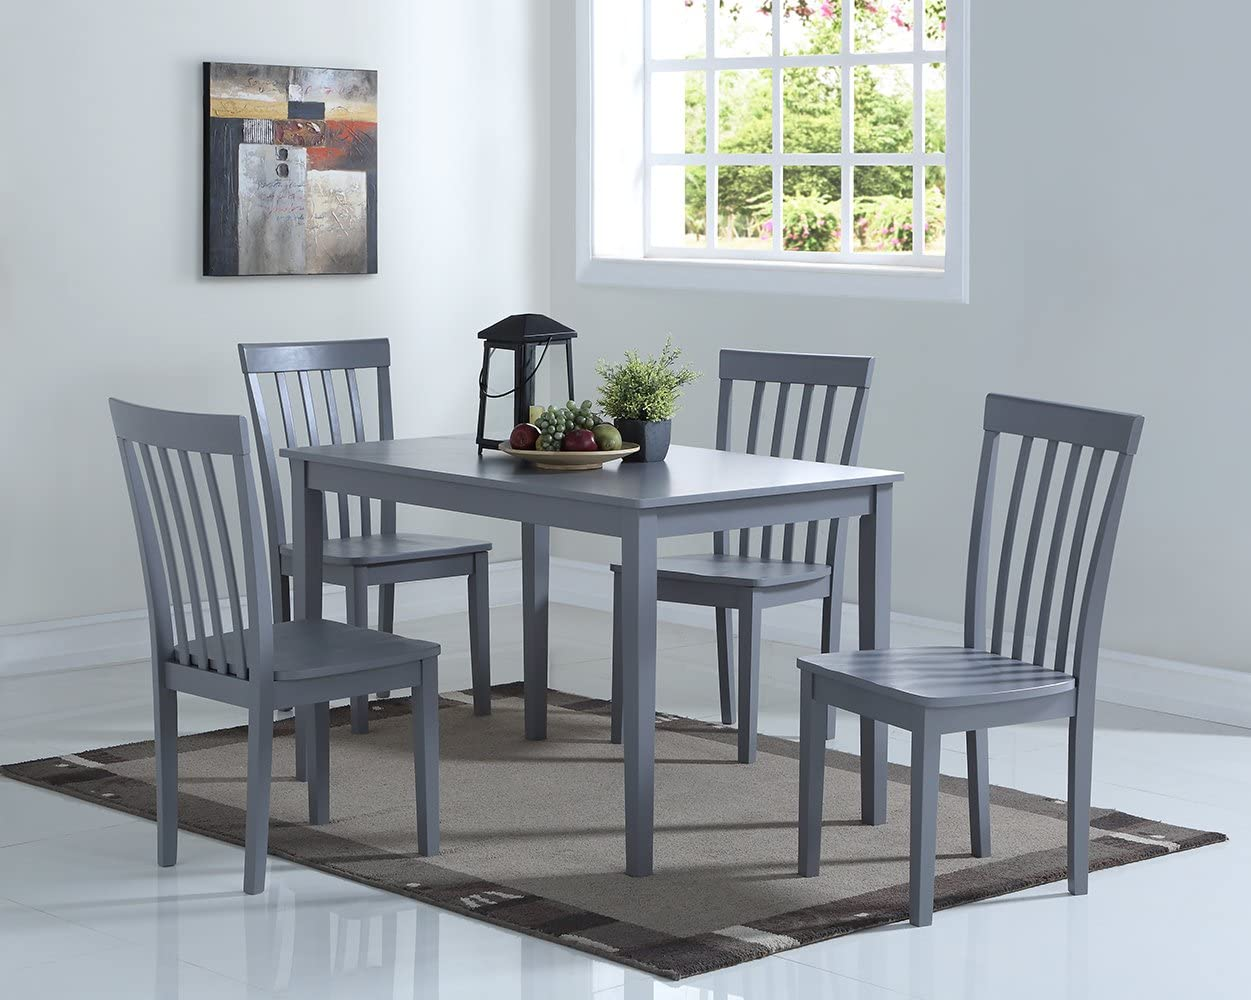 Angel Line Dining Set 5-Piece